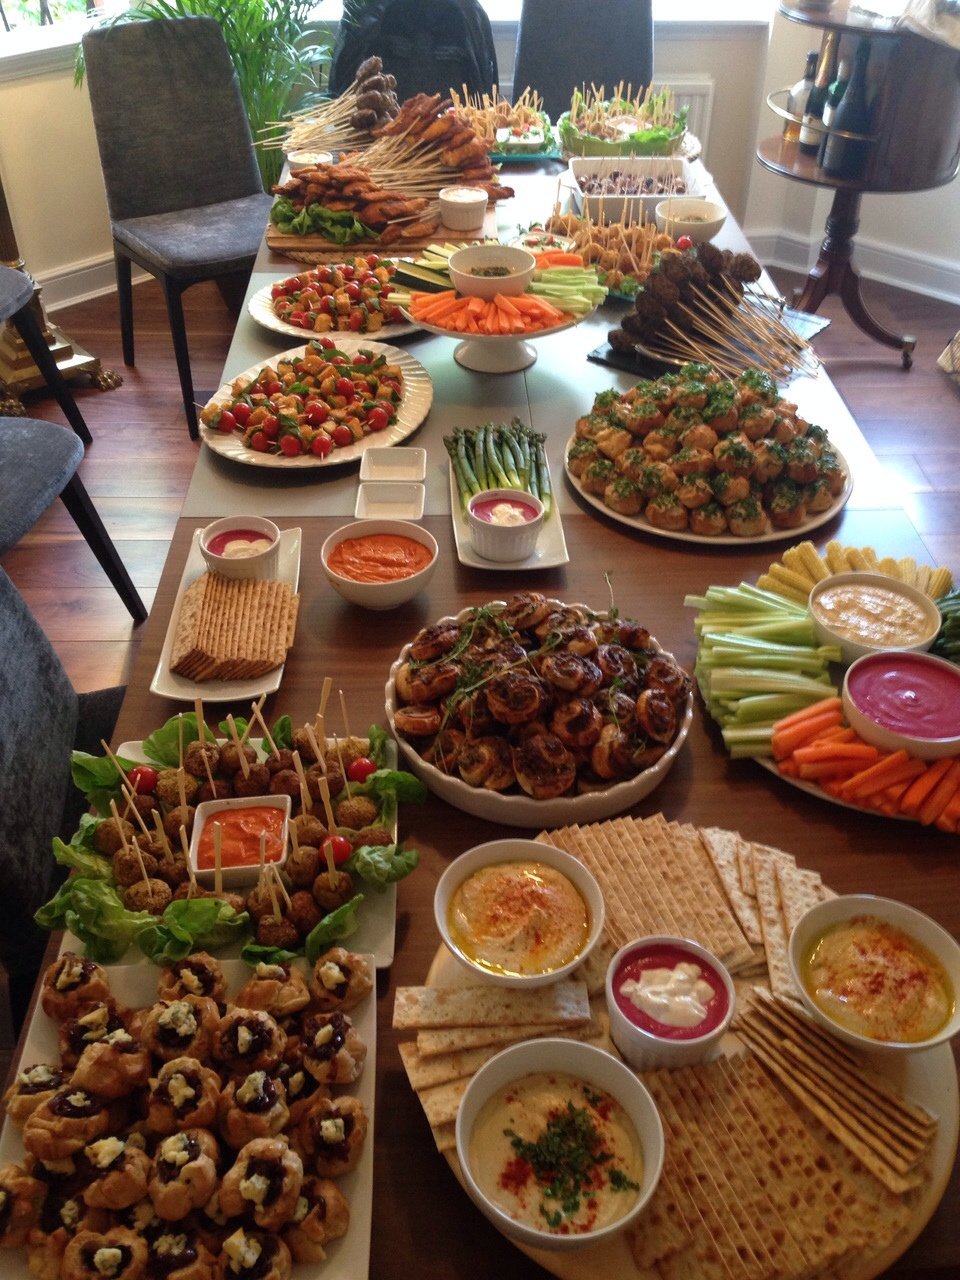 Examples of Buffet dishes